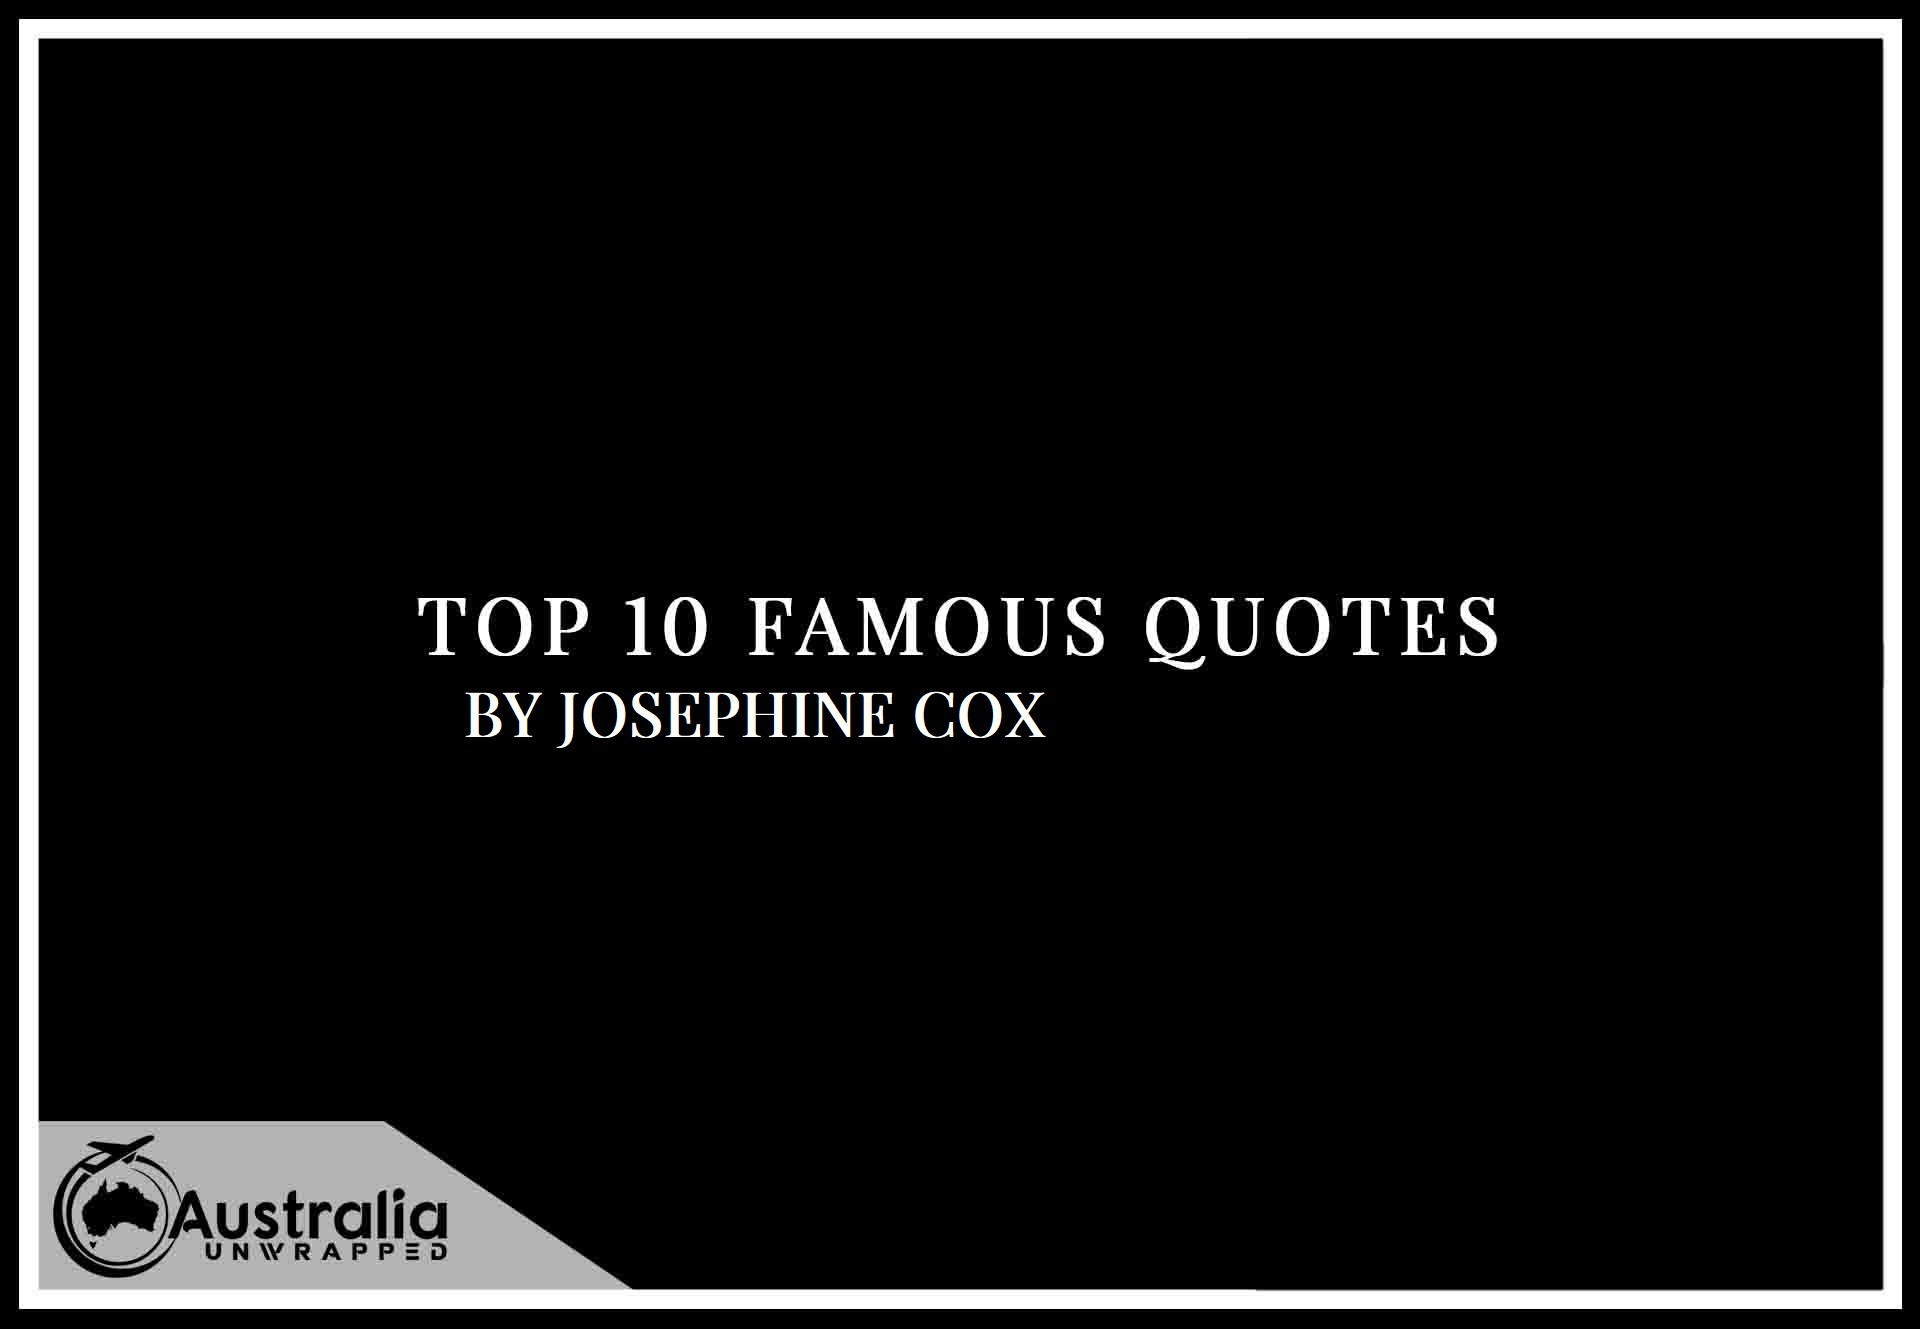 Top 10 Famous Quotes by Author Josephine Cox